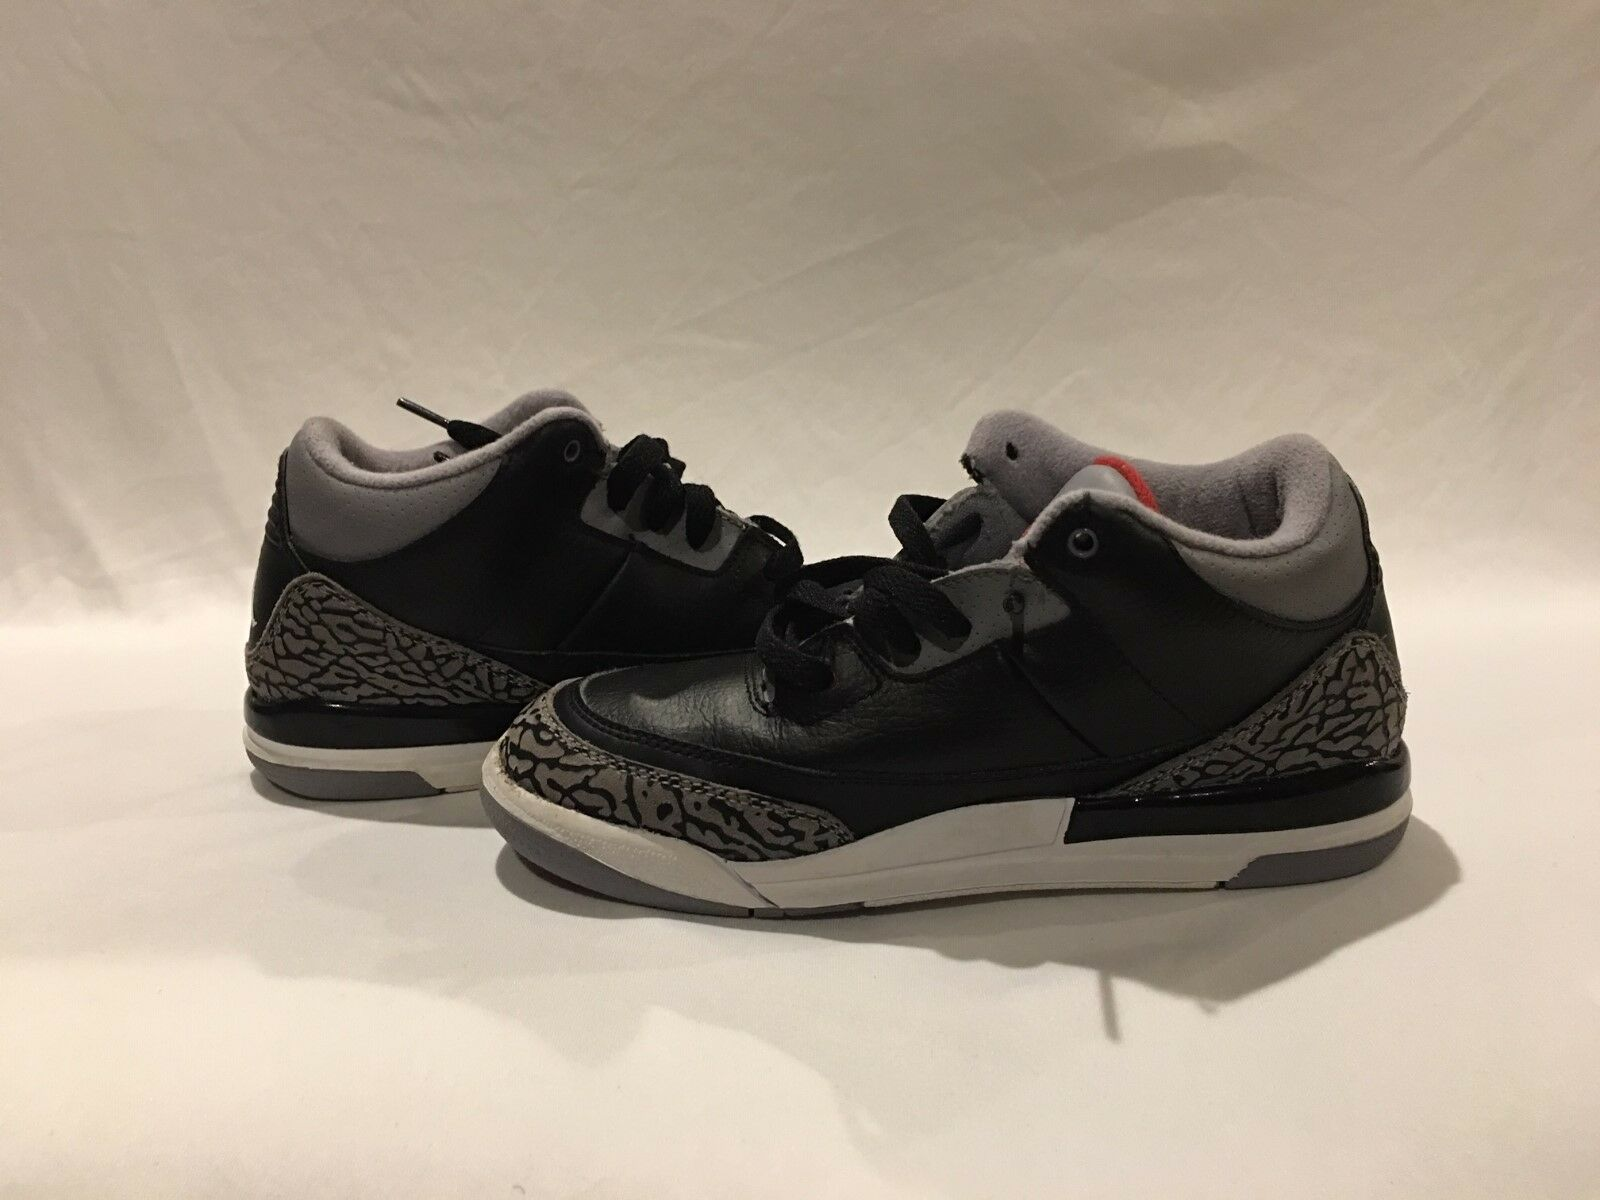 179da3233343 Nike Air Jordan Jordan Jordan 3 III 2011 Retro Black Leather Gray and black  boy size